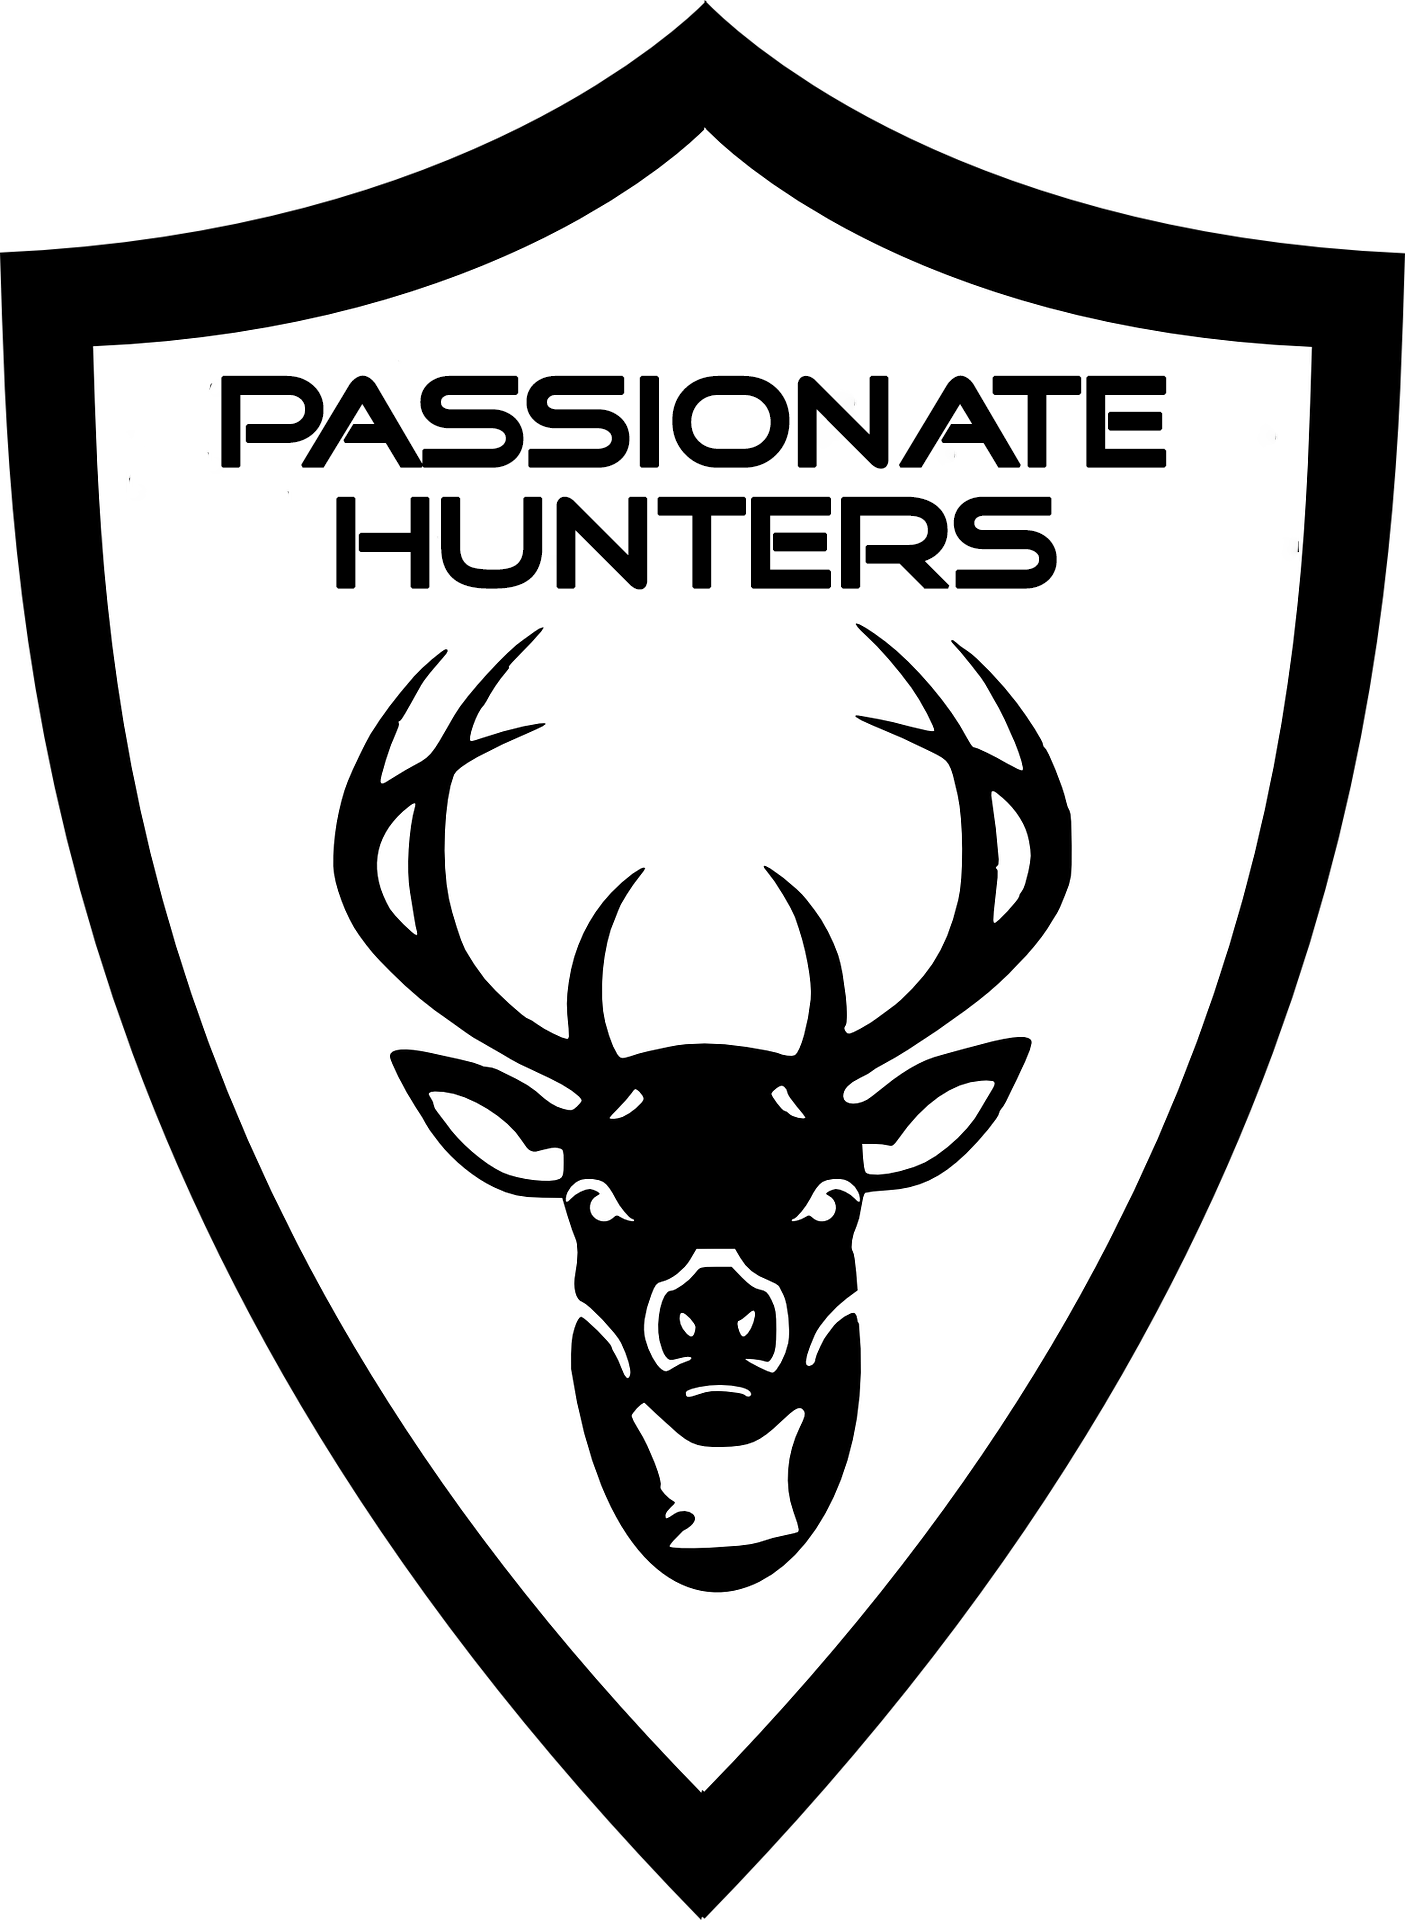 Passionate Hunters